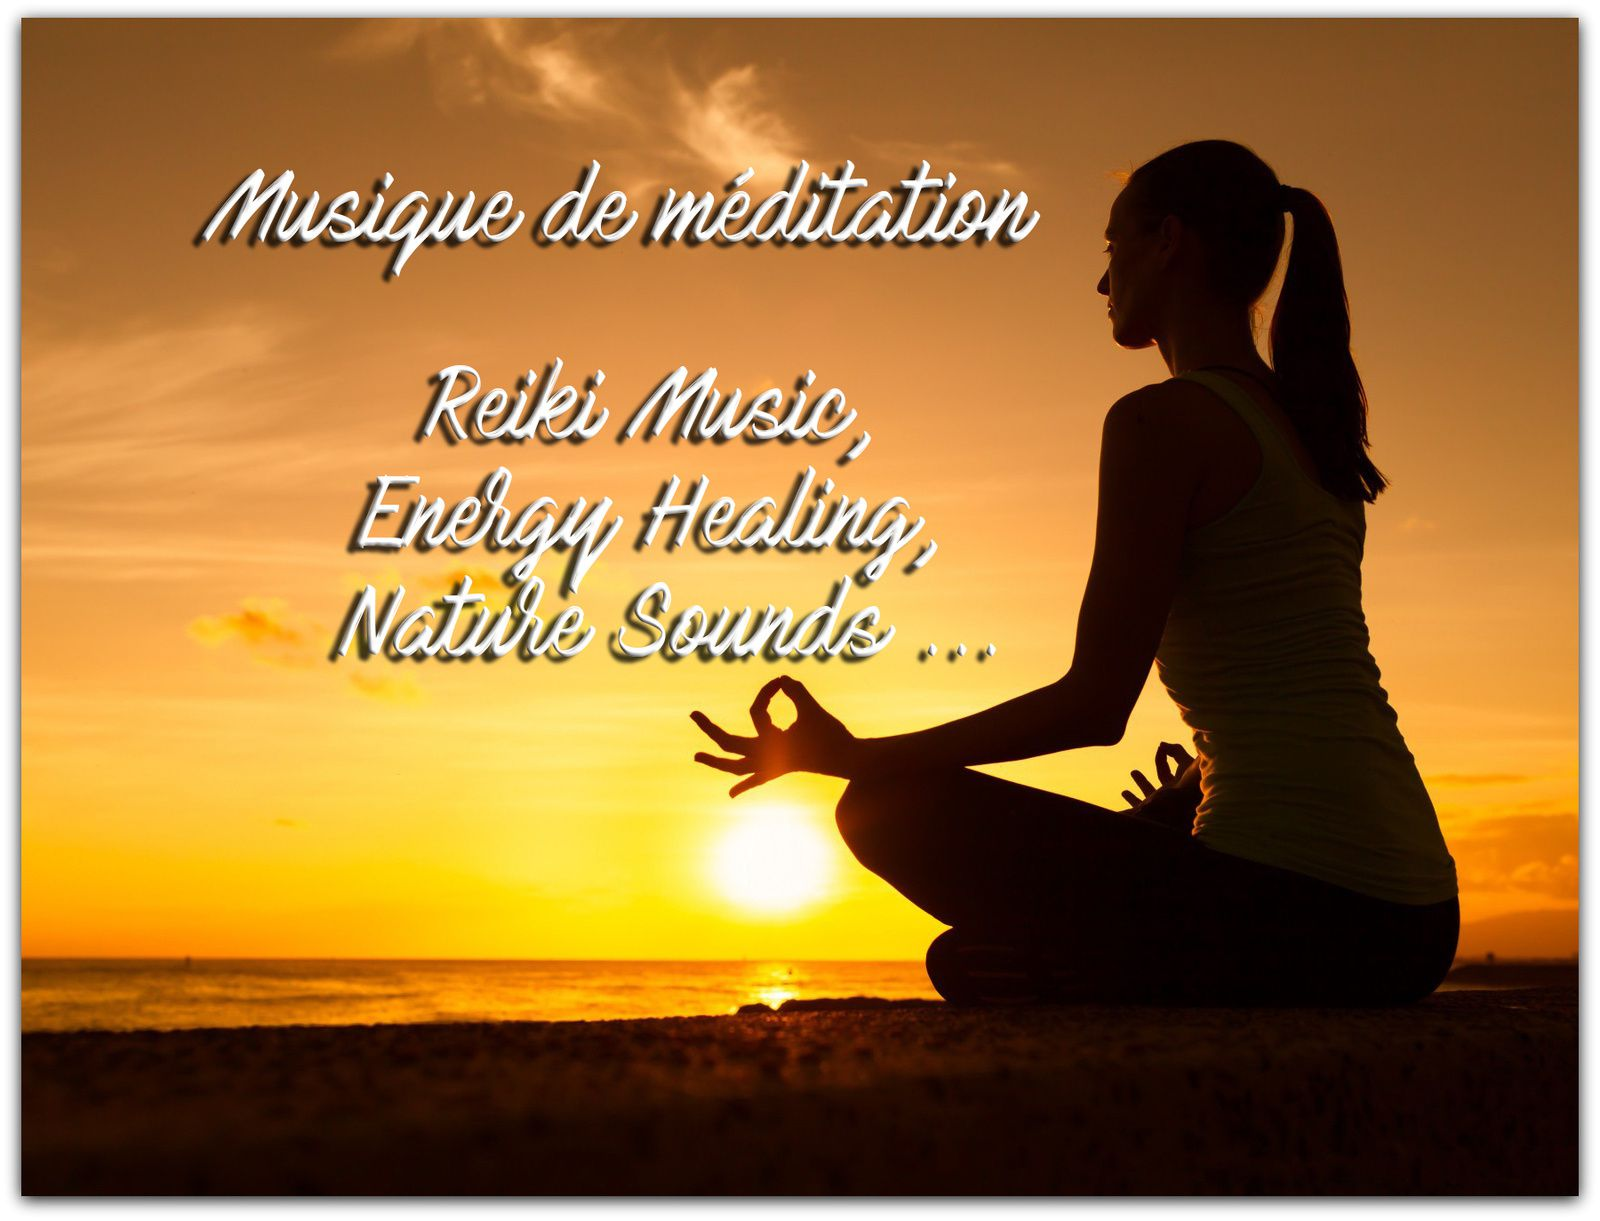 Musique de méditation : Reiki Music, Energy Healing, Nature Sounds